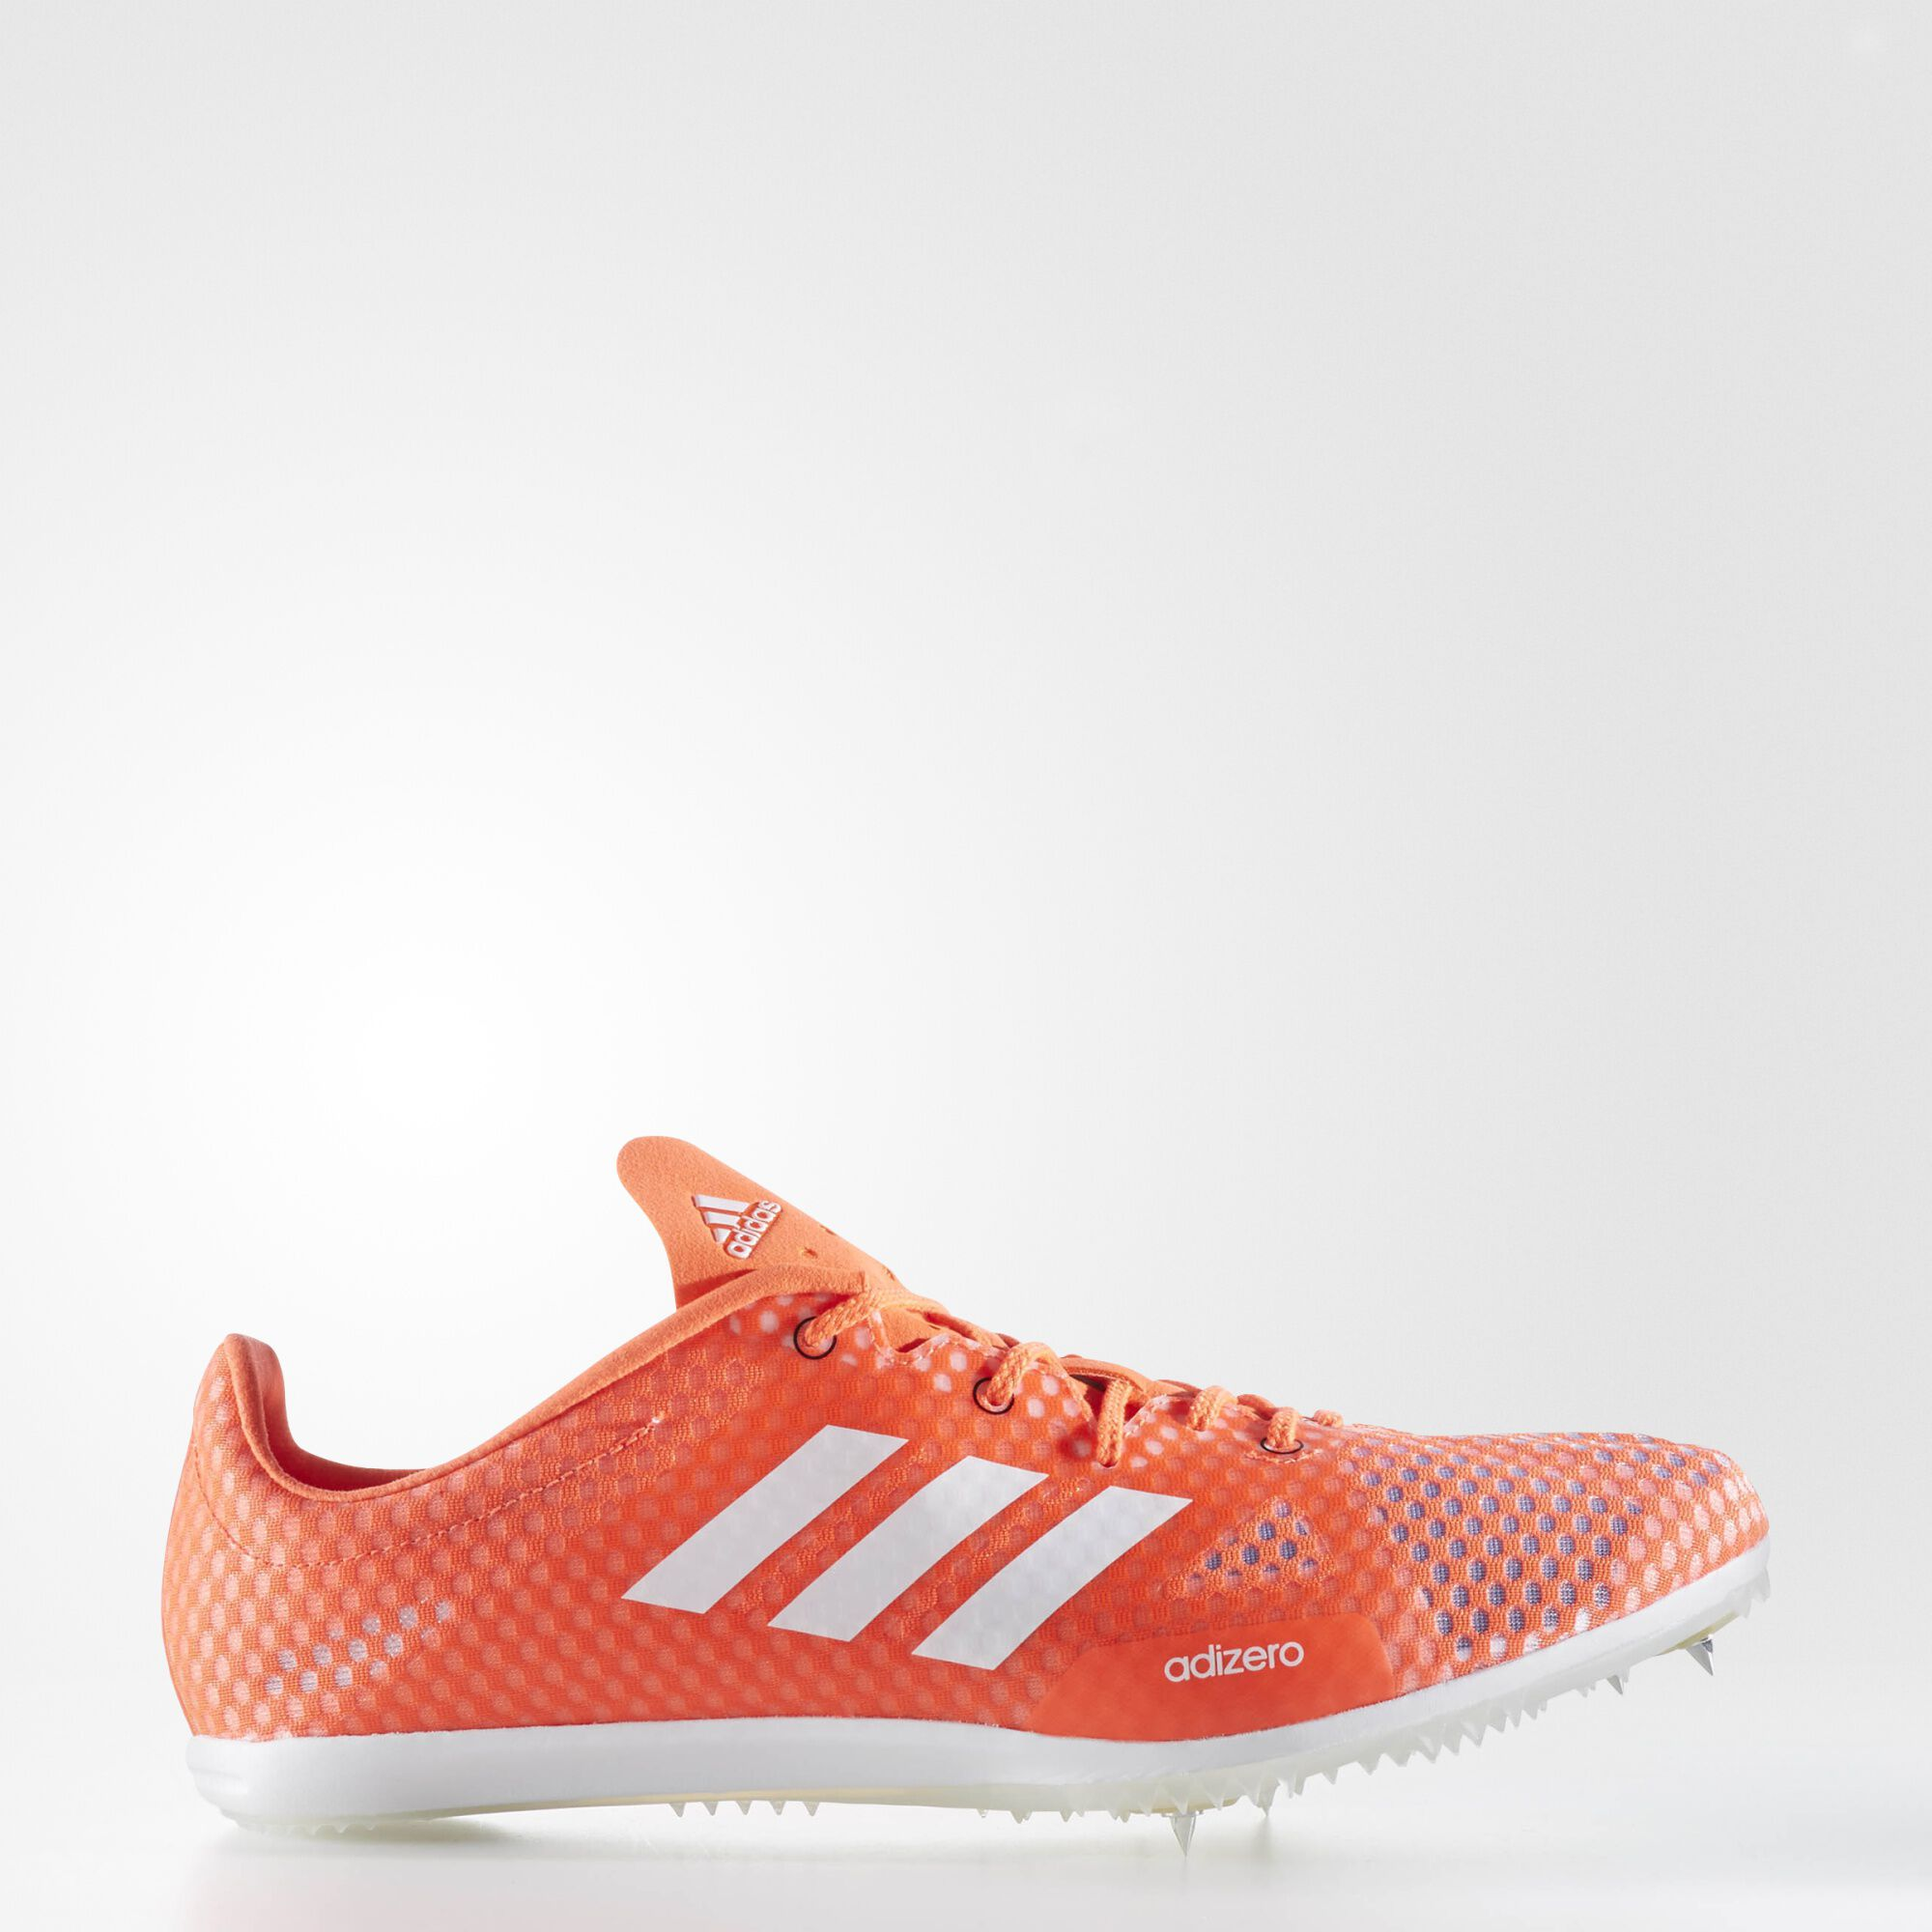 Adidas Shoes Adizero